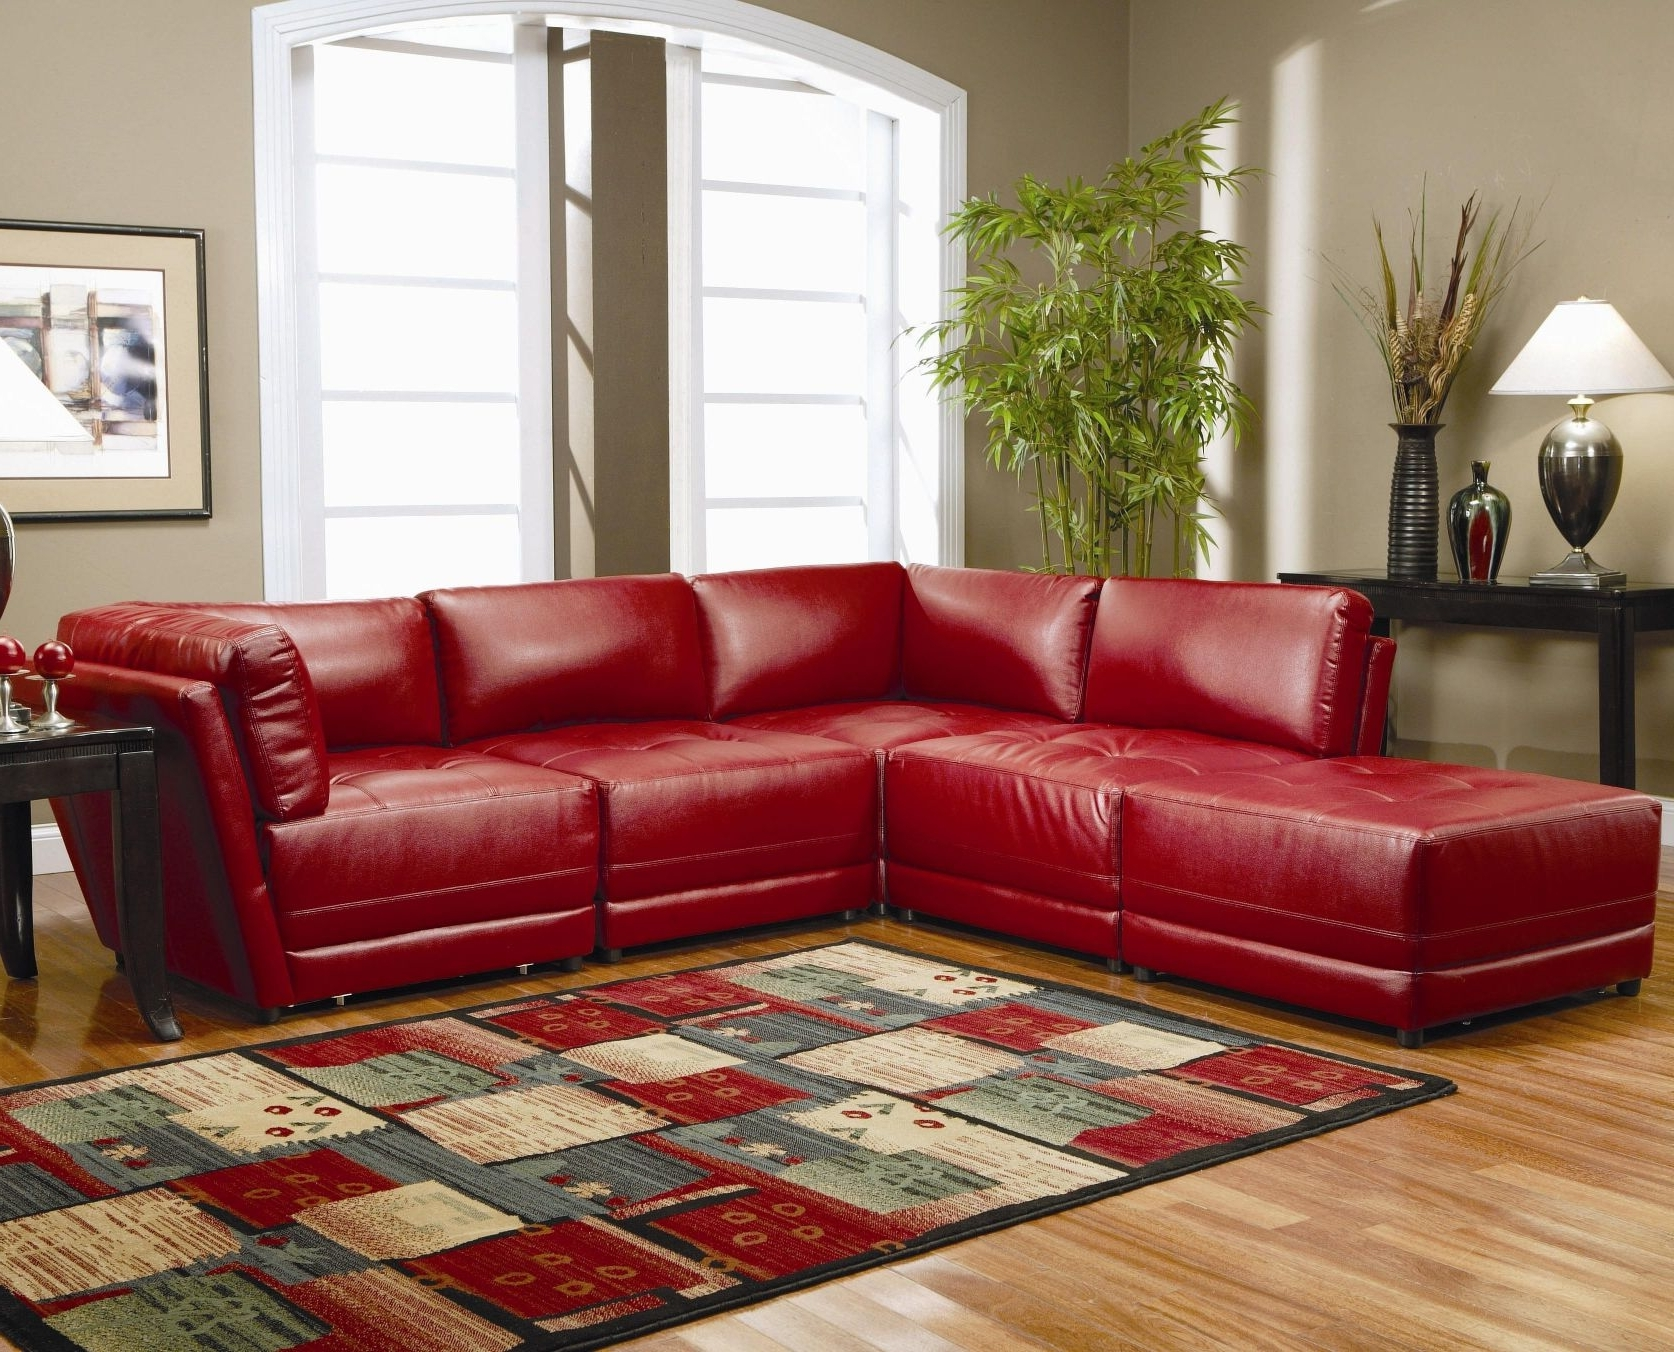 Most Recent Red Leather Couches For Living Room Inside Marvelous Warm Red Leather Sectionalshaped Sofa Design Ideas For (View 12 of 20)